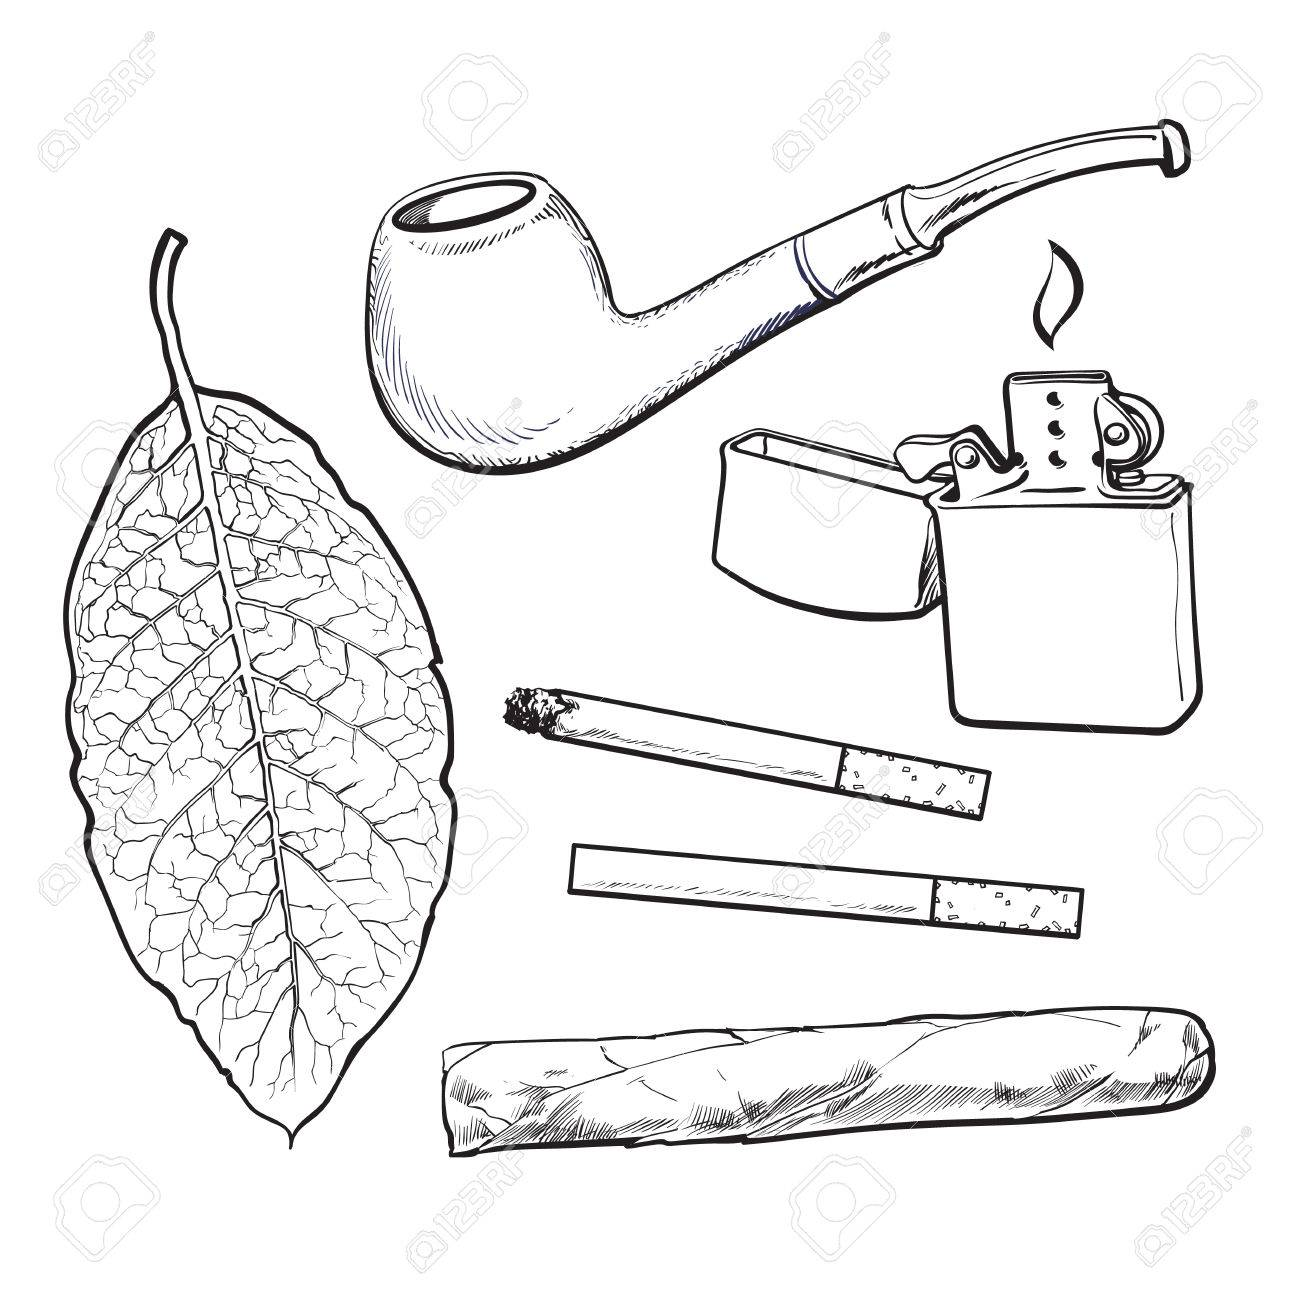 1300x1300 Smoking Pipe, Lighter, Cigar, Cigarettes And Tobacco Leaf, Sketch